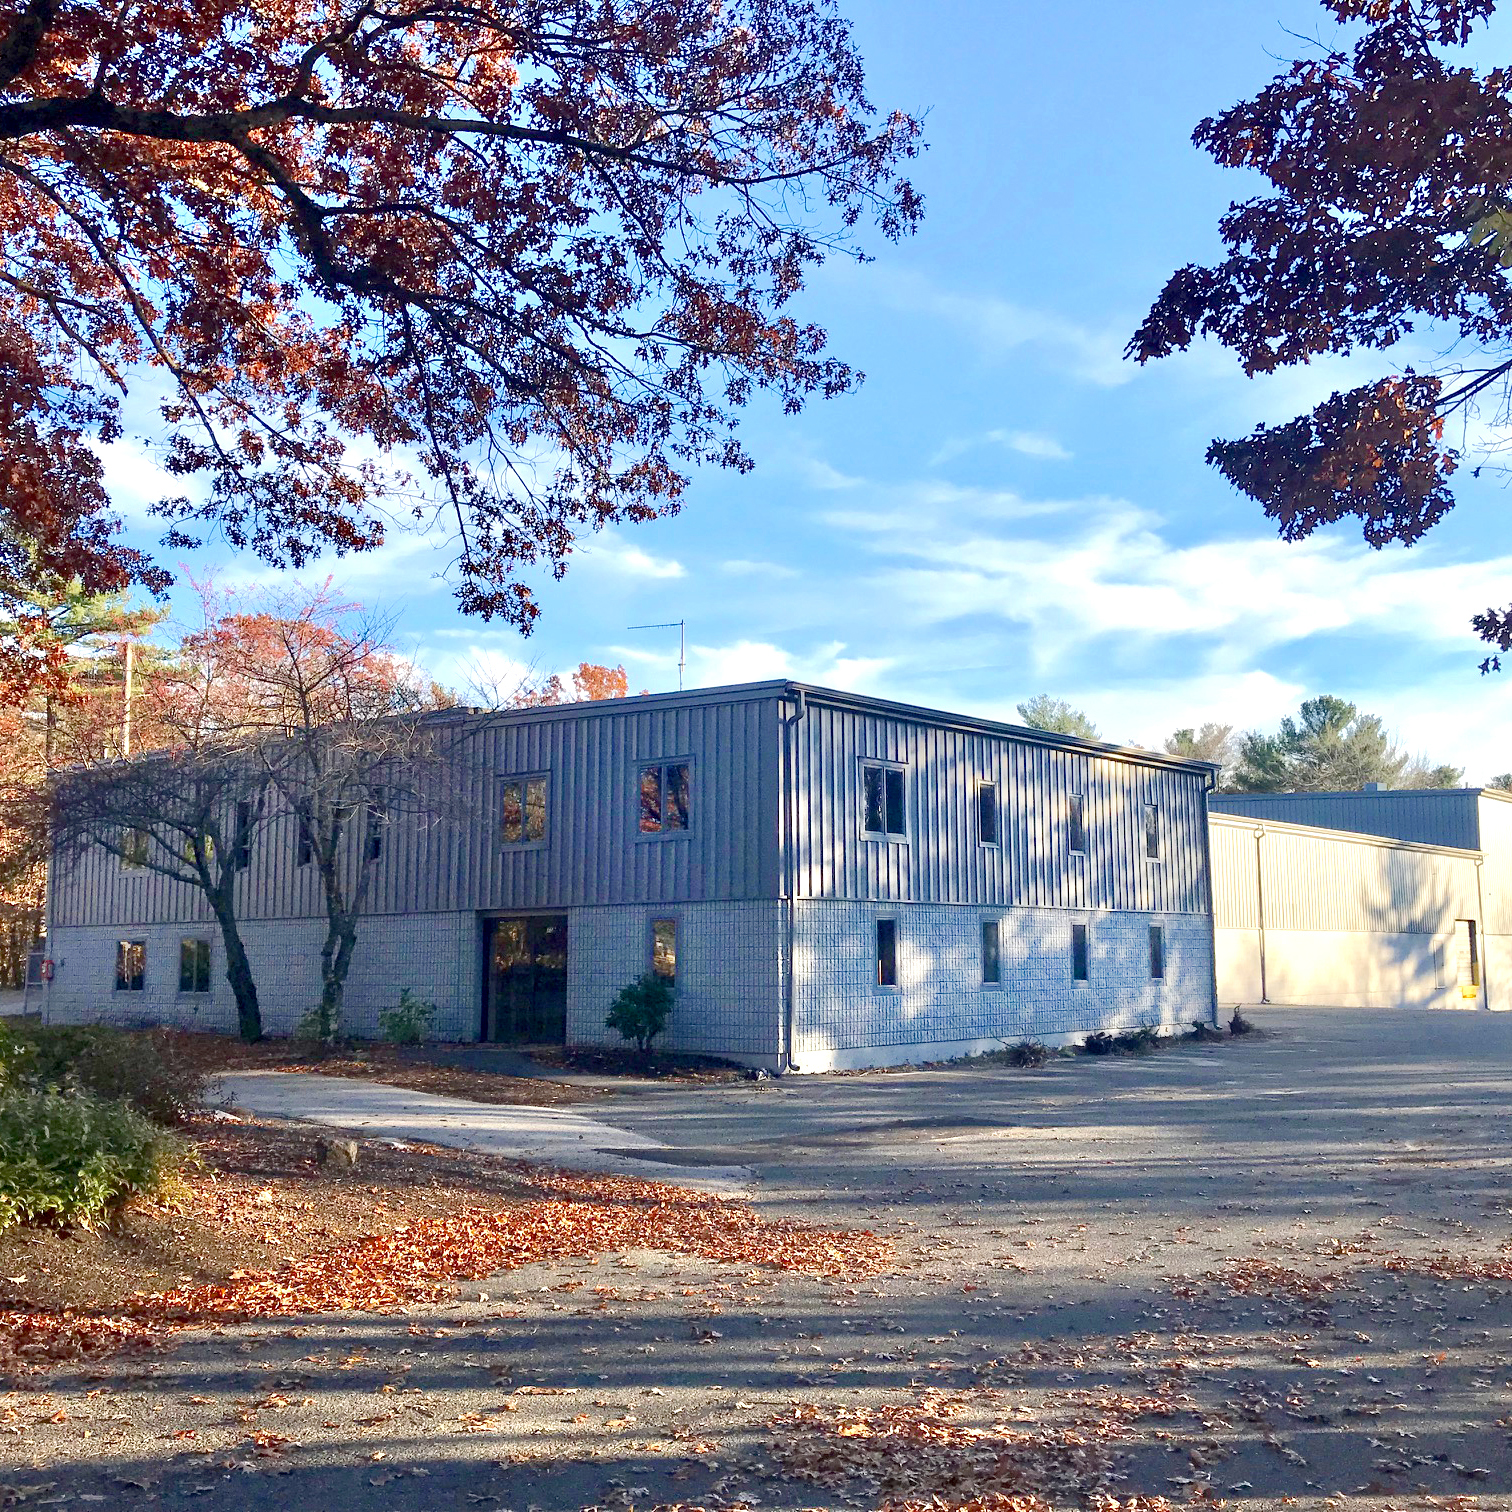 75 INDUSTRIAL PARK - Flex Office / WarehouseHingham, MA